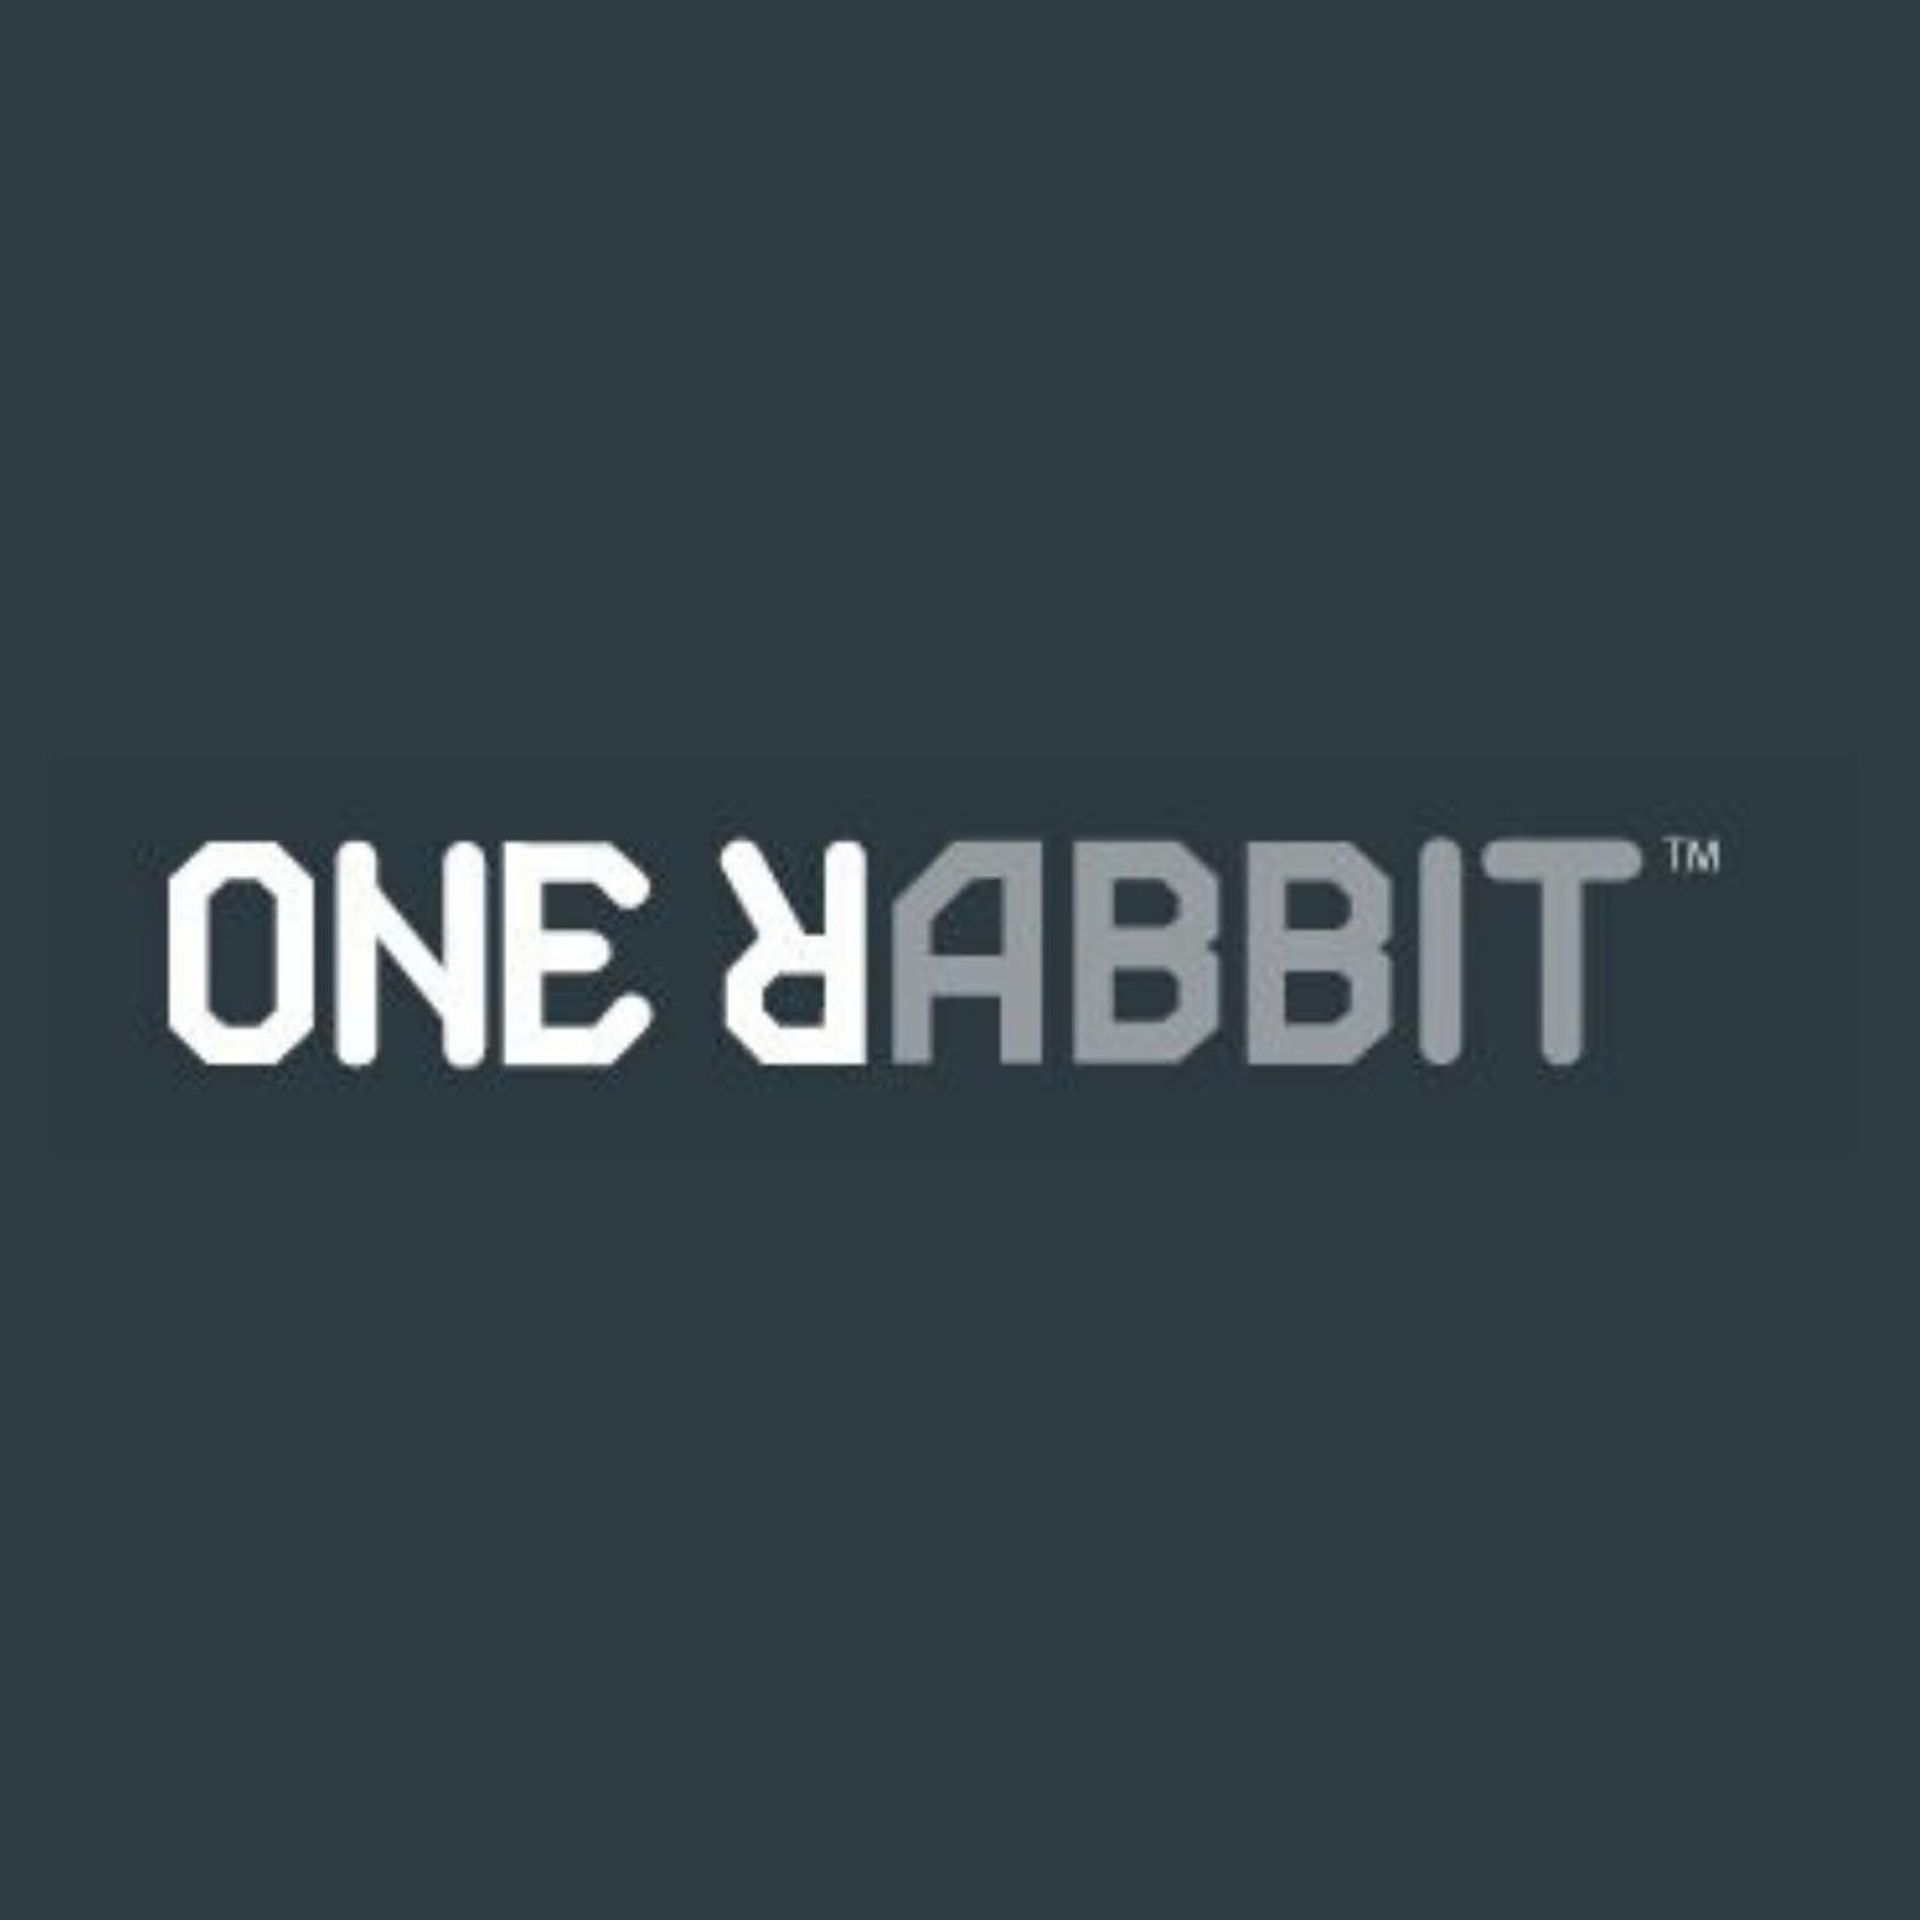 One Rabbit marketing firm black and white logo